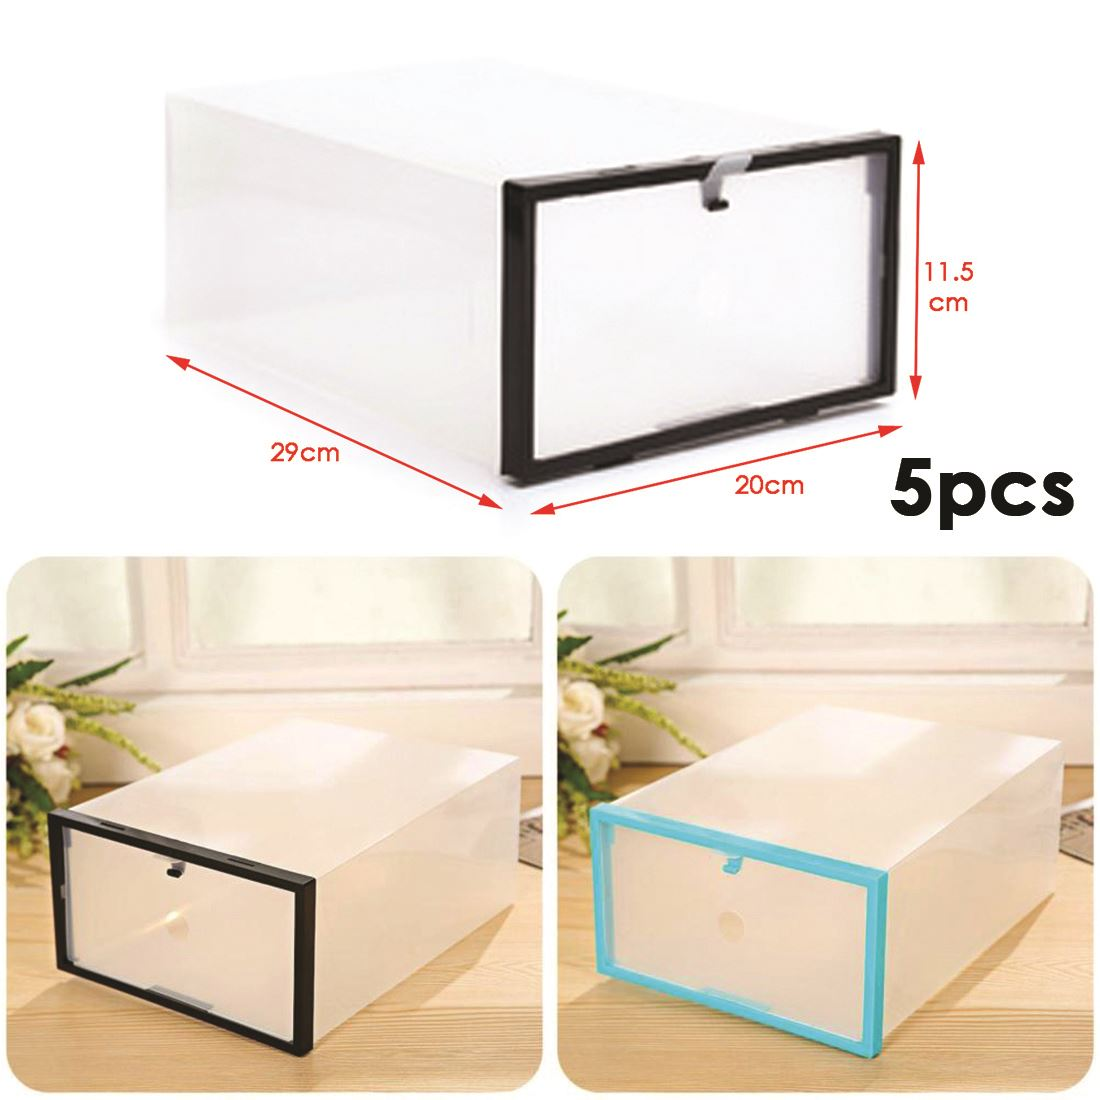 5 Plastic Drawer Shoe Storage Box Clear Stackable Organiser Transparent Folding Ebay